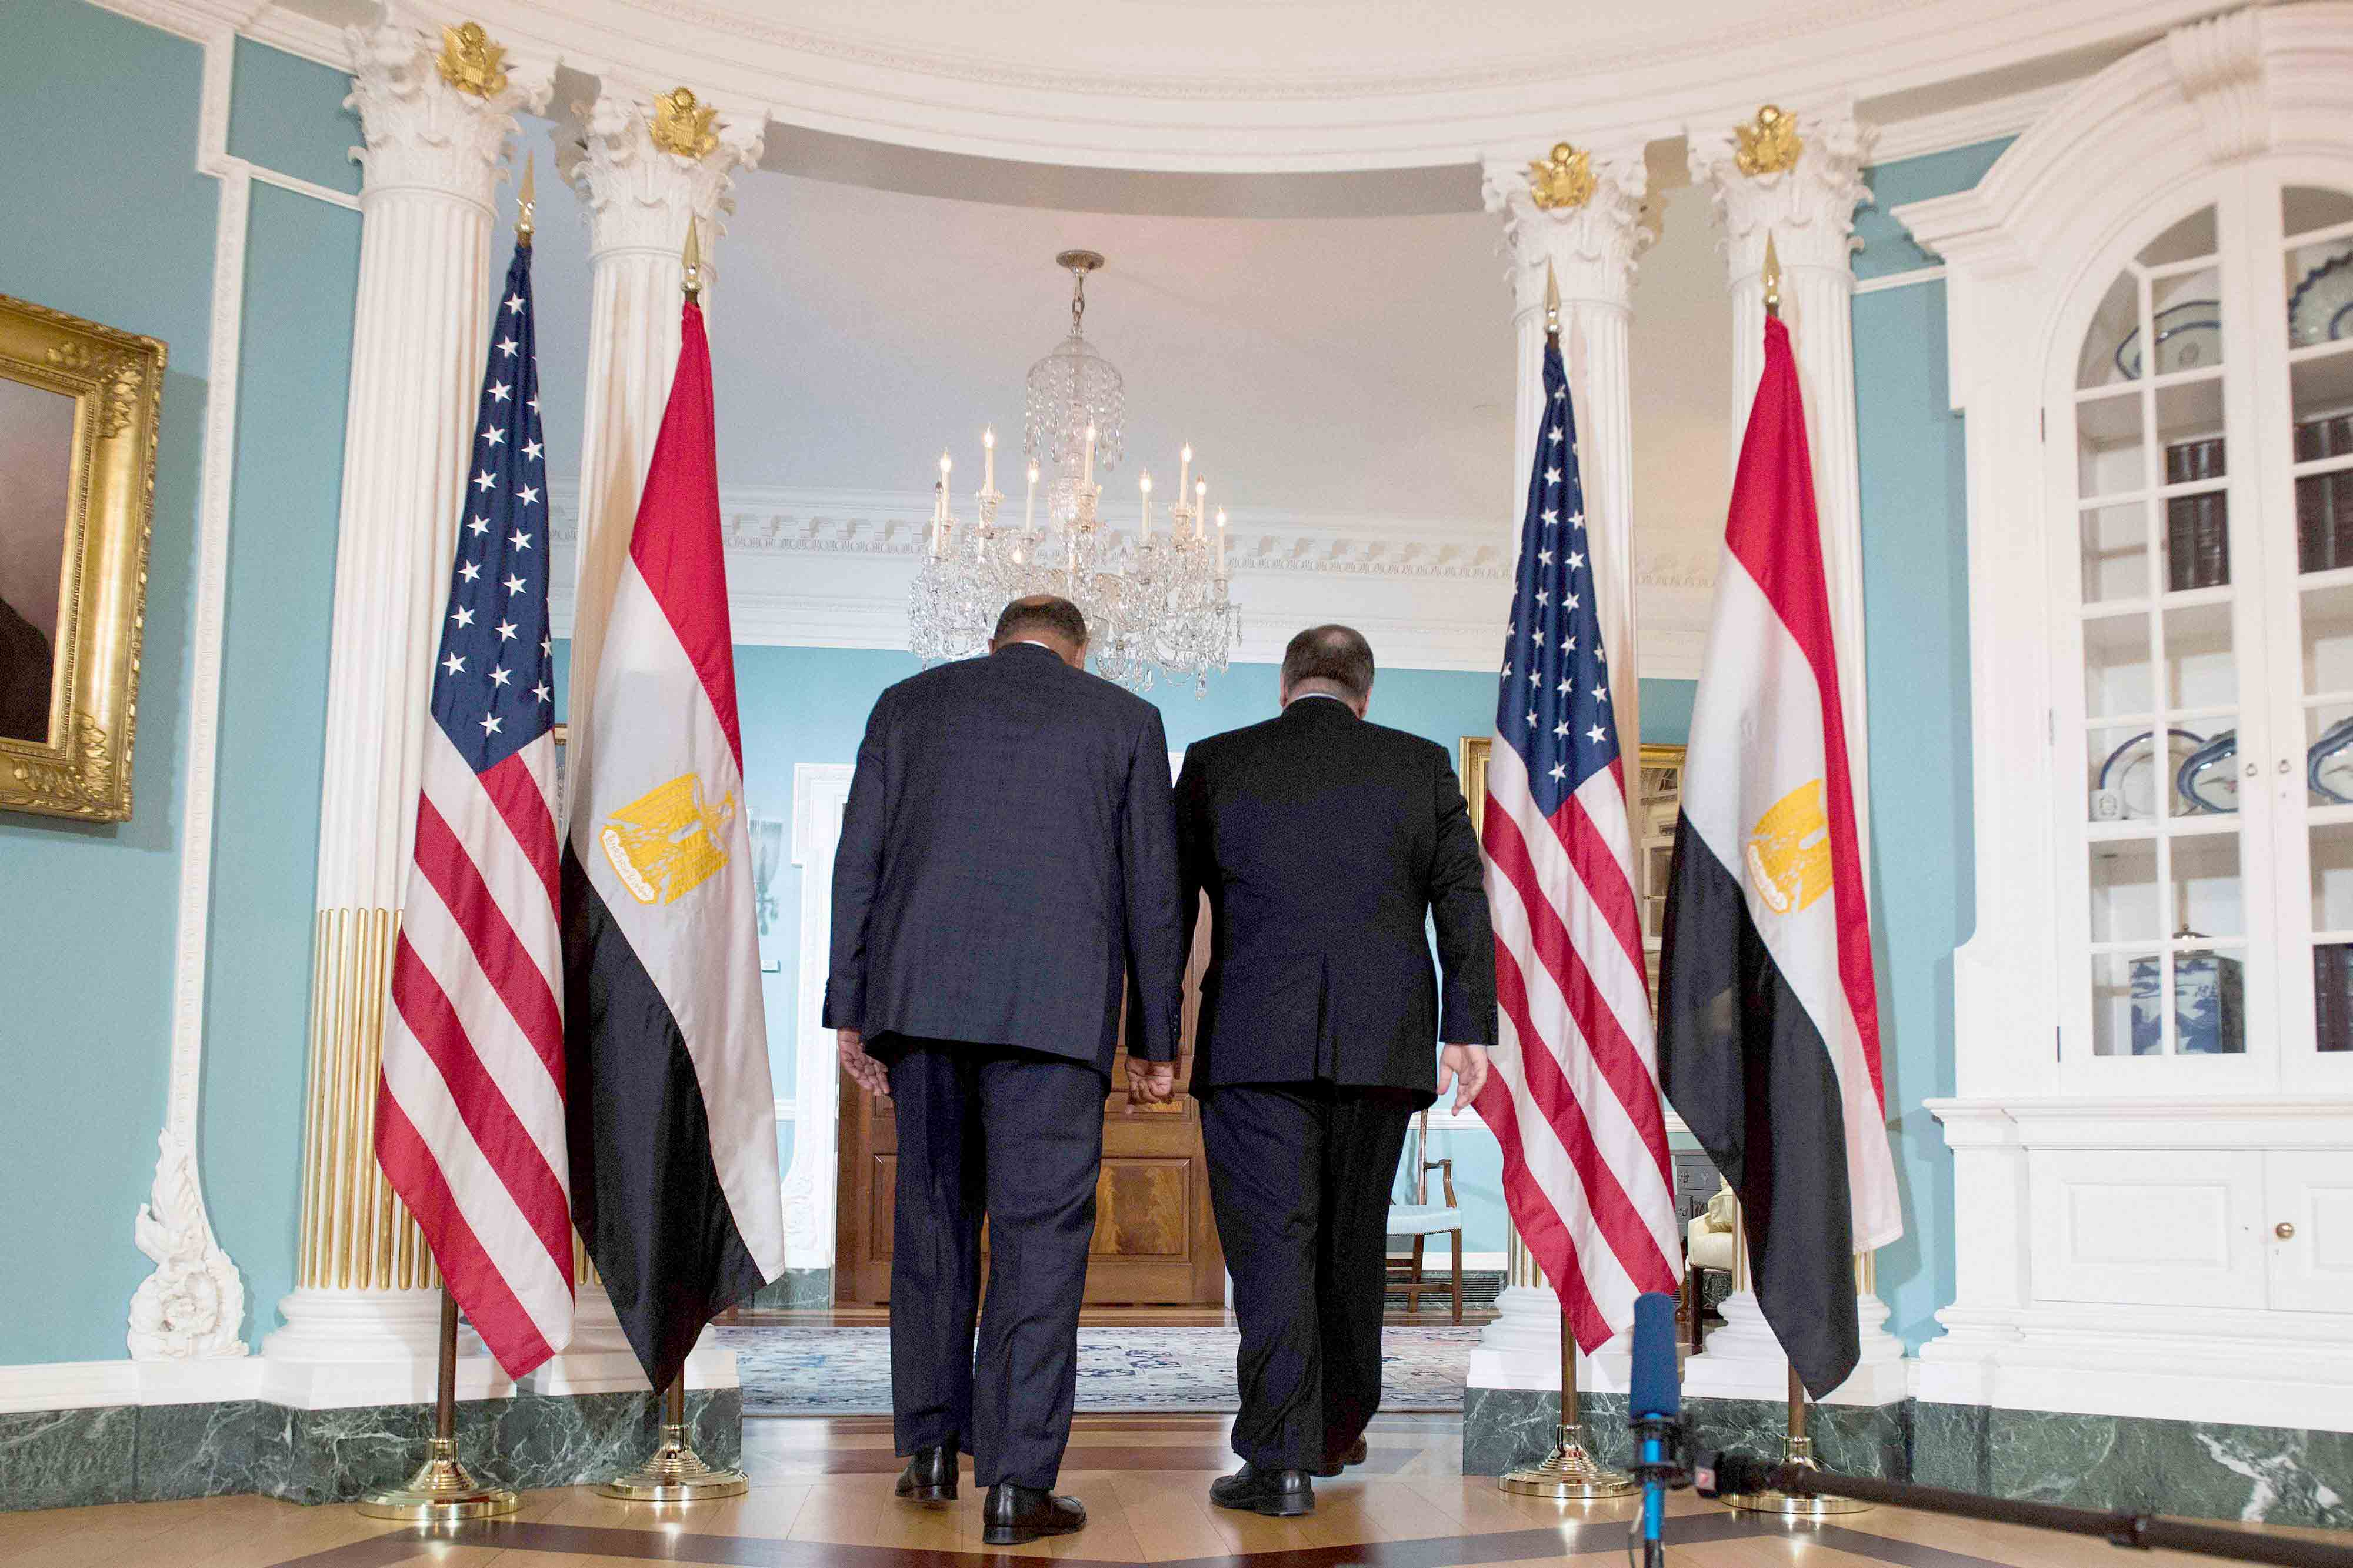 US Secretary of State Mike Pompeo (R) walks with Egyptian Foreign Minister Sameh Shoukry at the State Department in Washington, on August 8. (AFP)